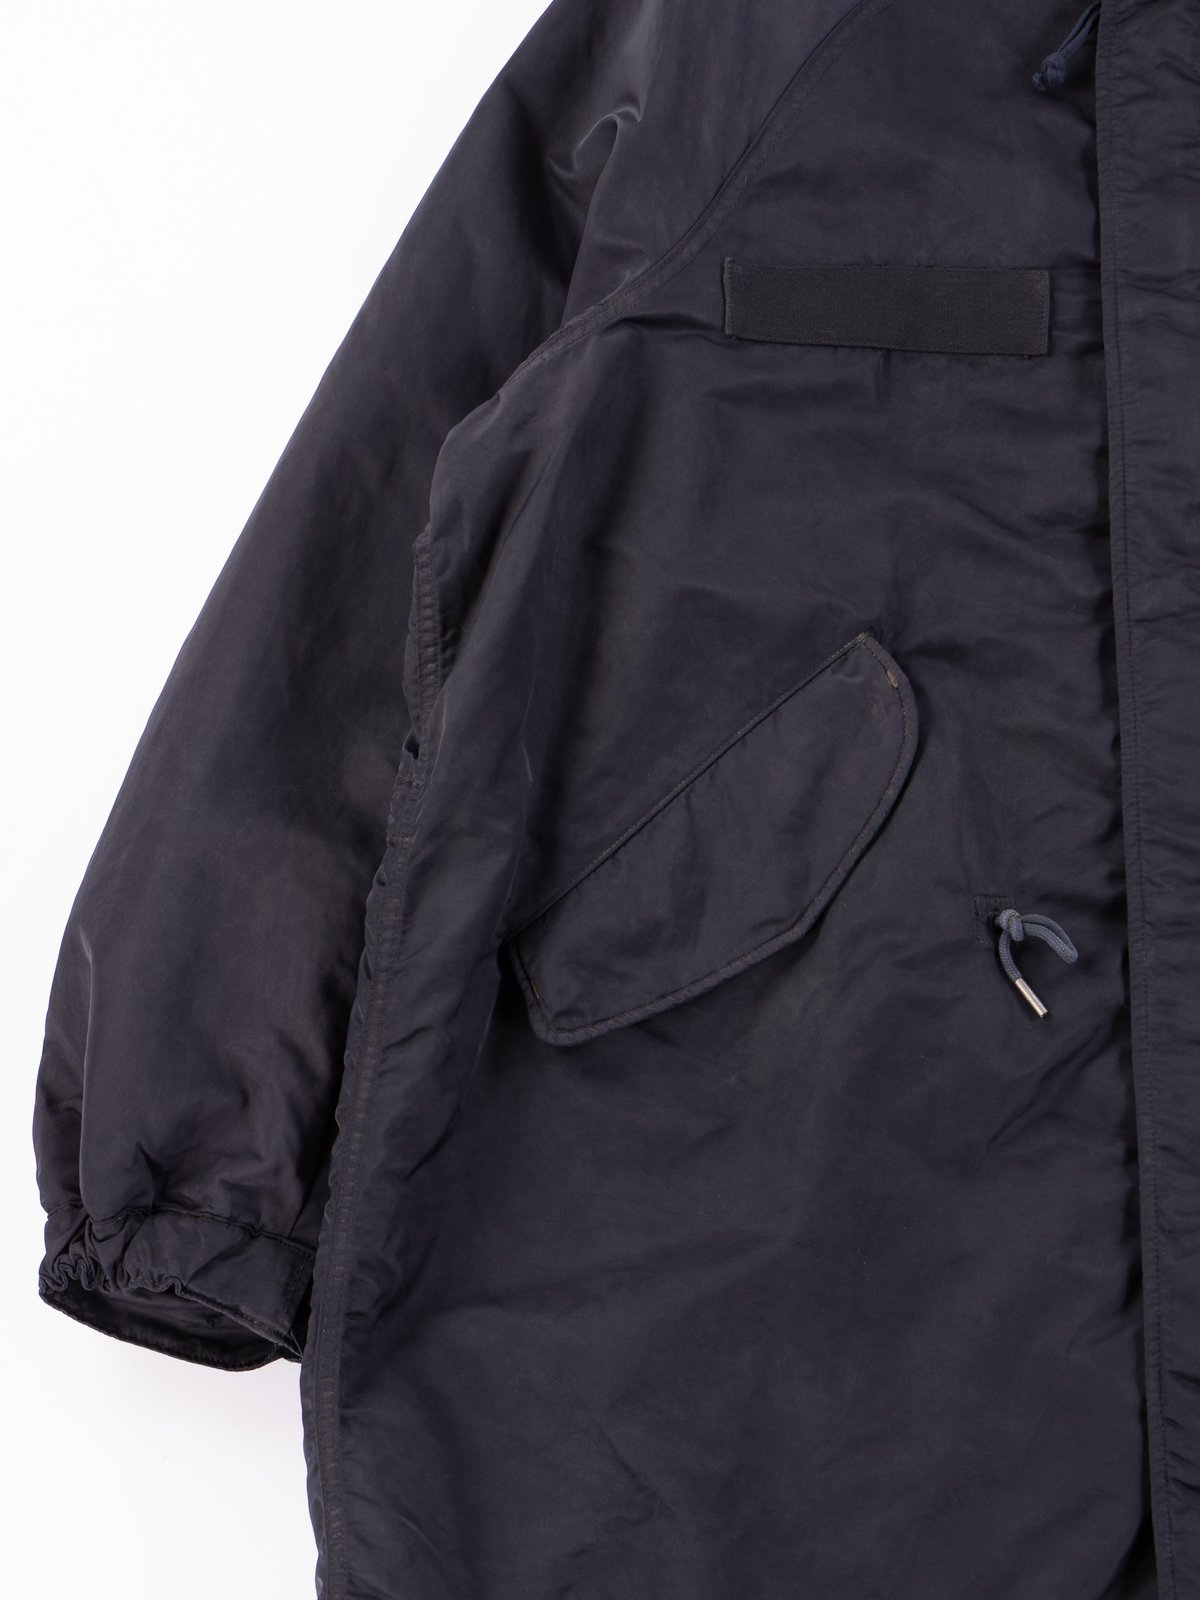 Navy Six–Five Fishtail Parka - Image 5